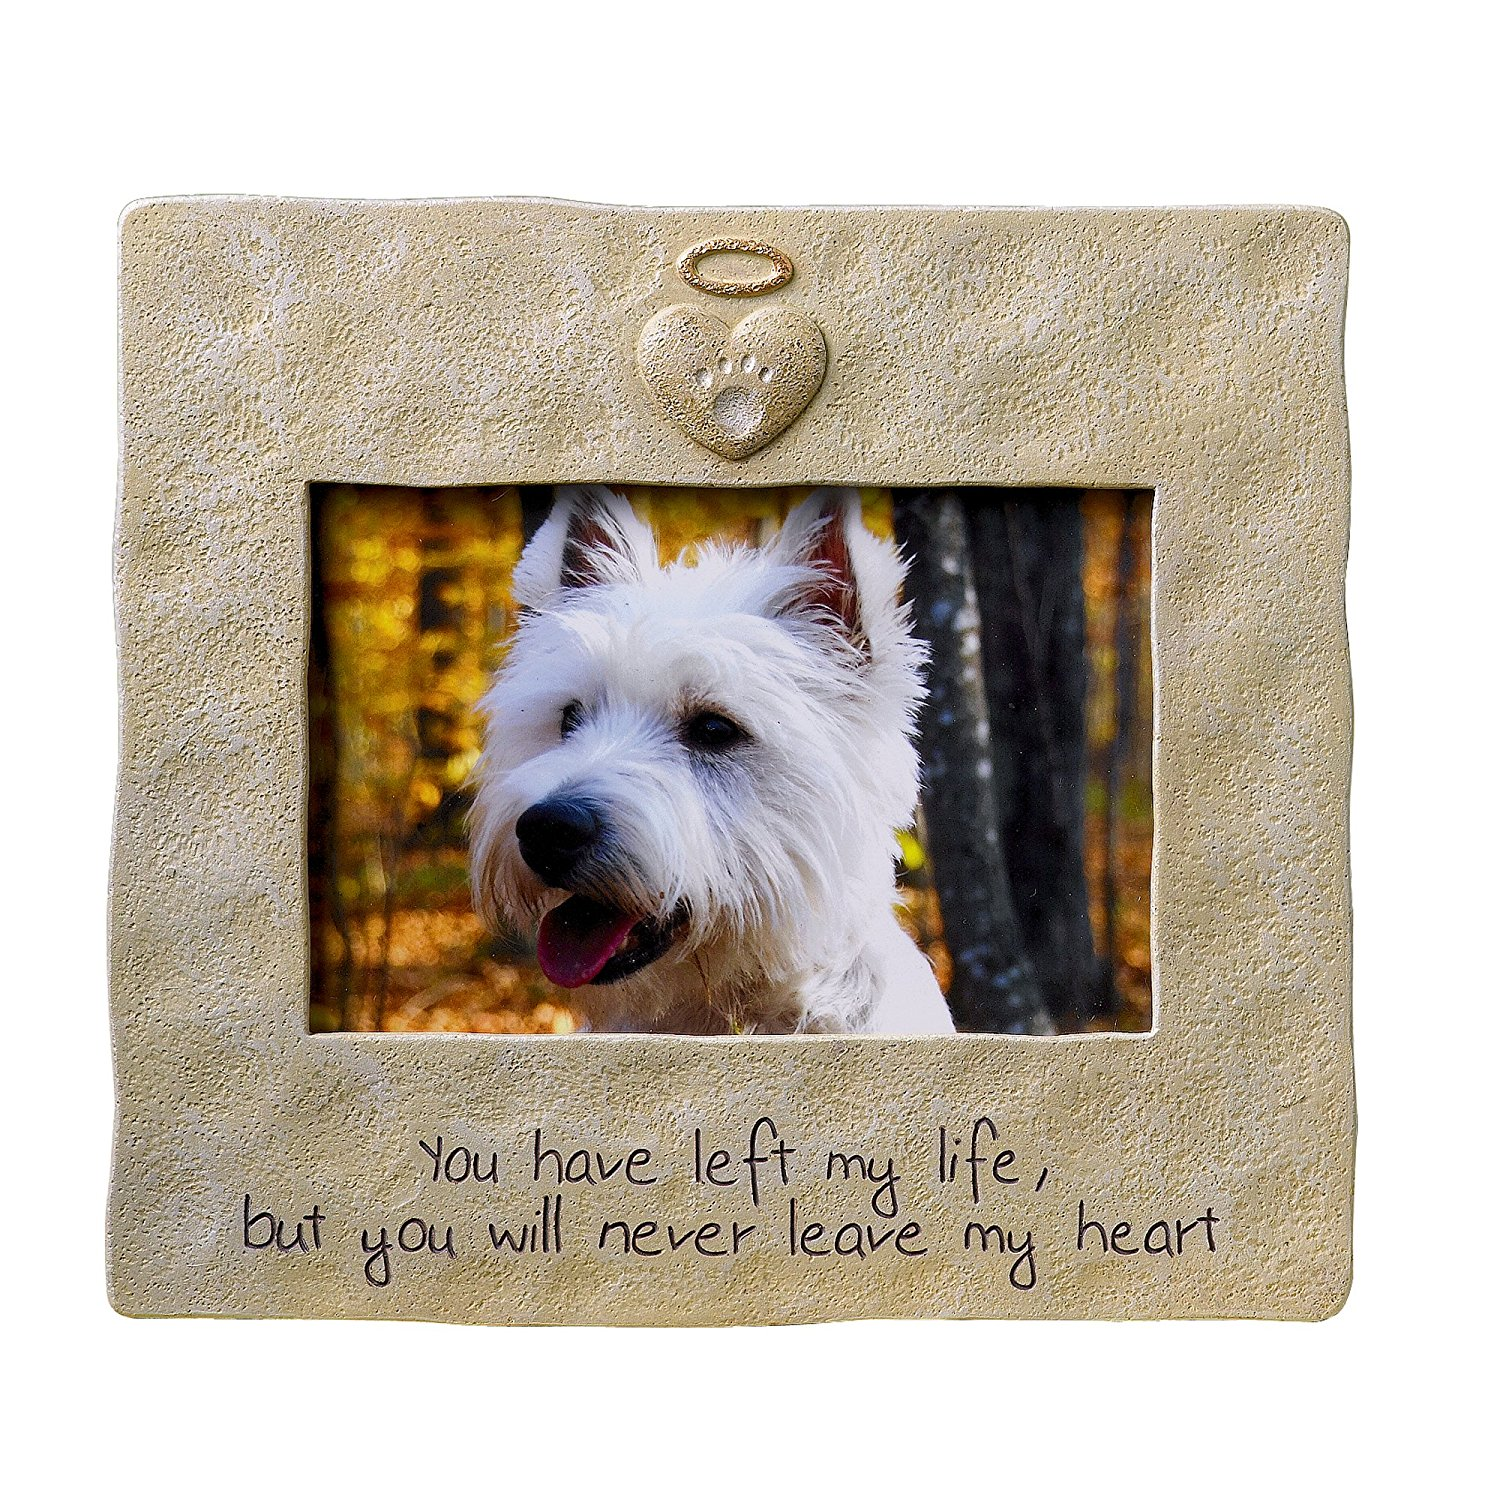 Pet cremation 5 helpful tips pet memorial frame solutioingenieria Image collections